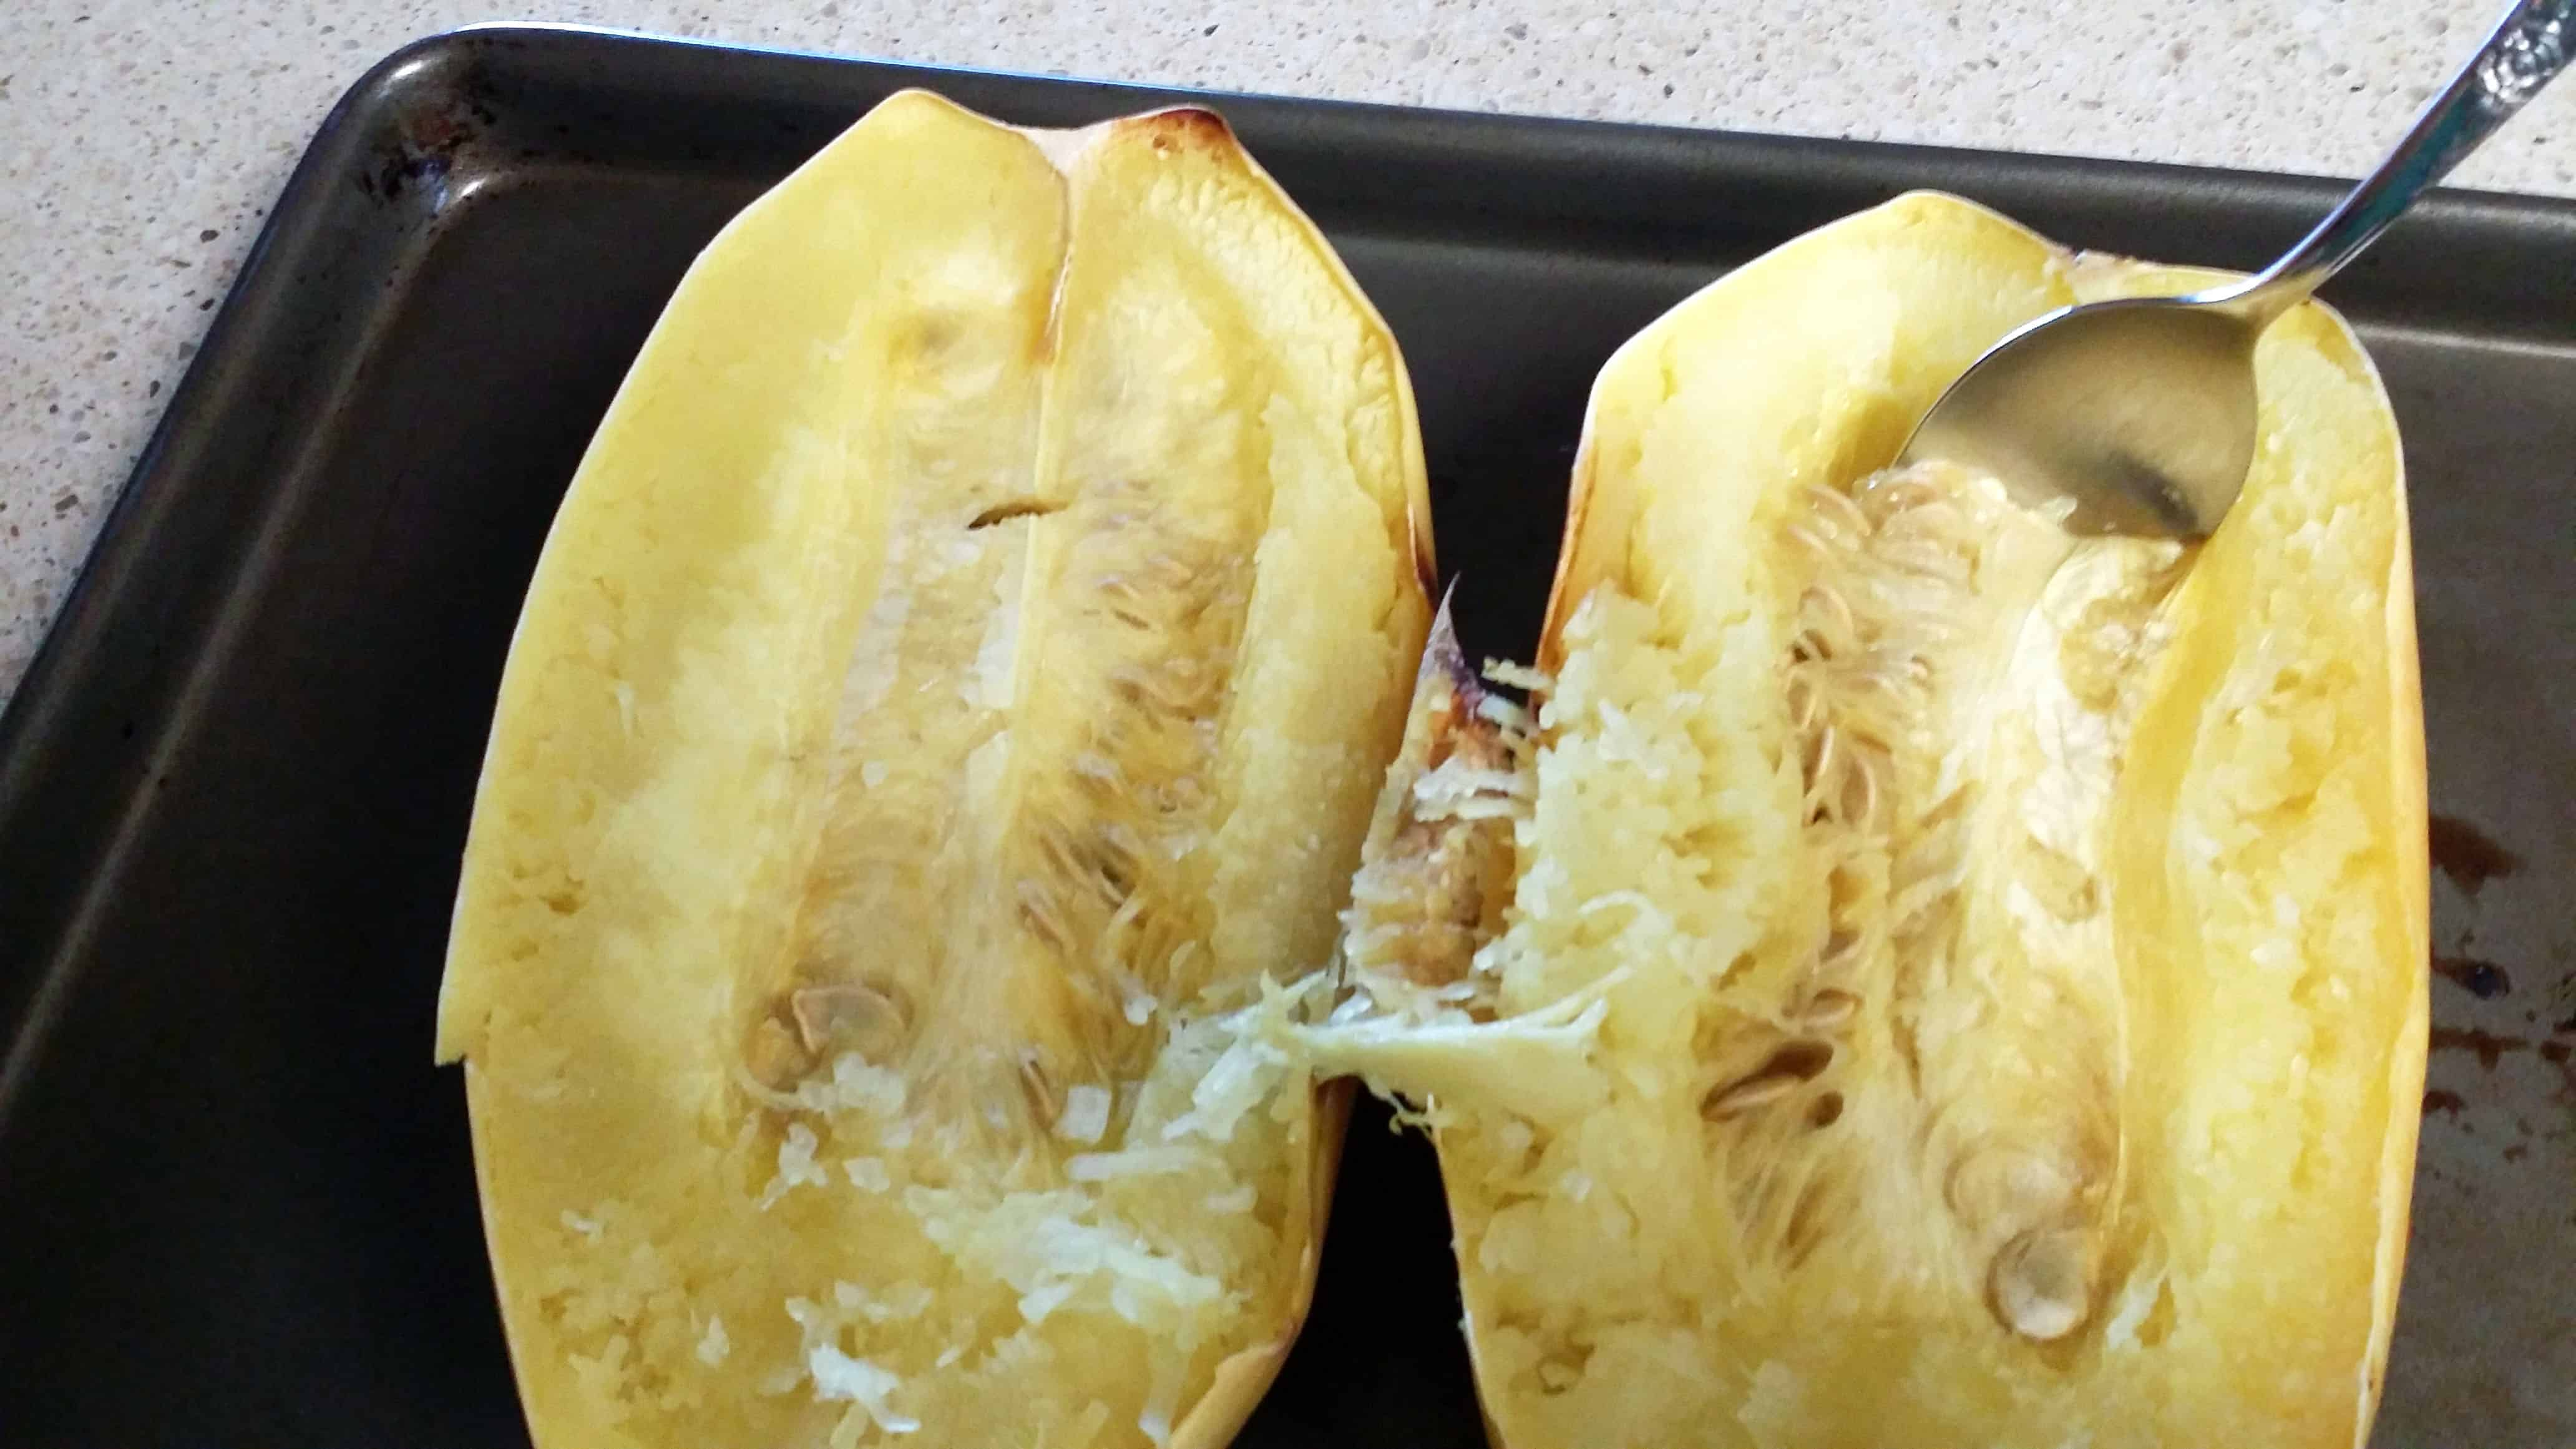 Scoop seeds out of spaghetti squash